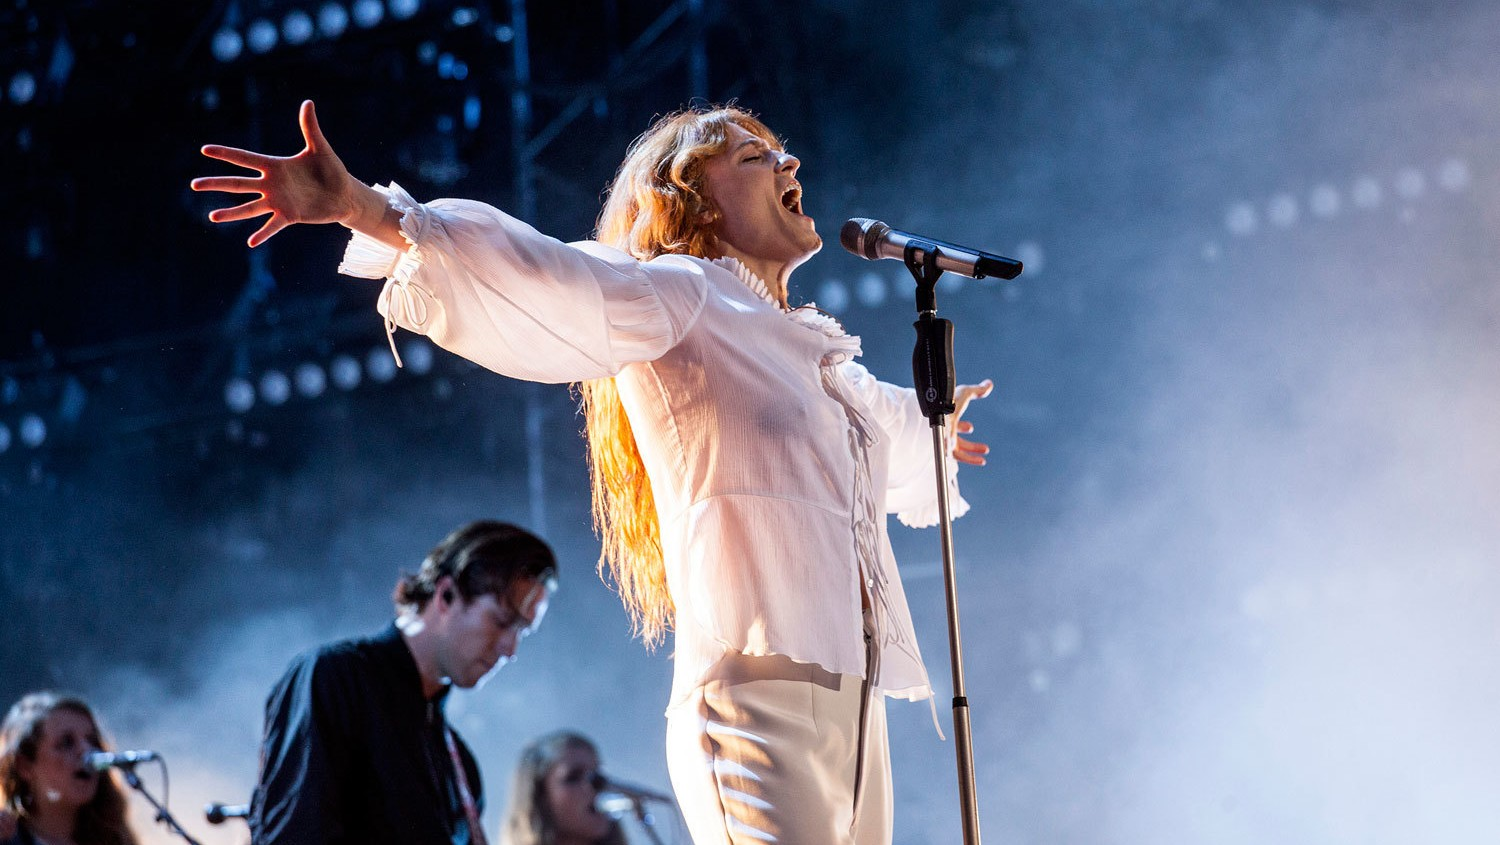 florence and the machine end summer tour on a high by headlining helsinki's flow festival